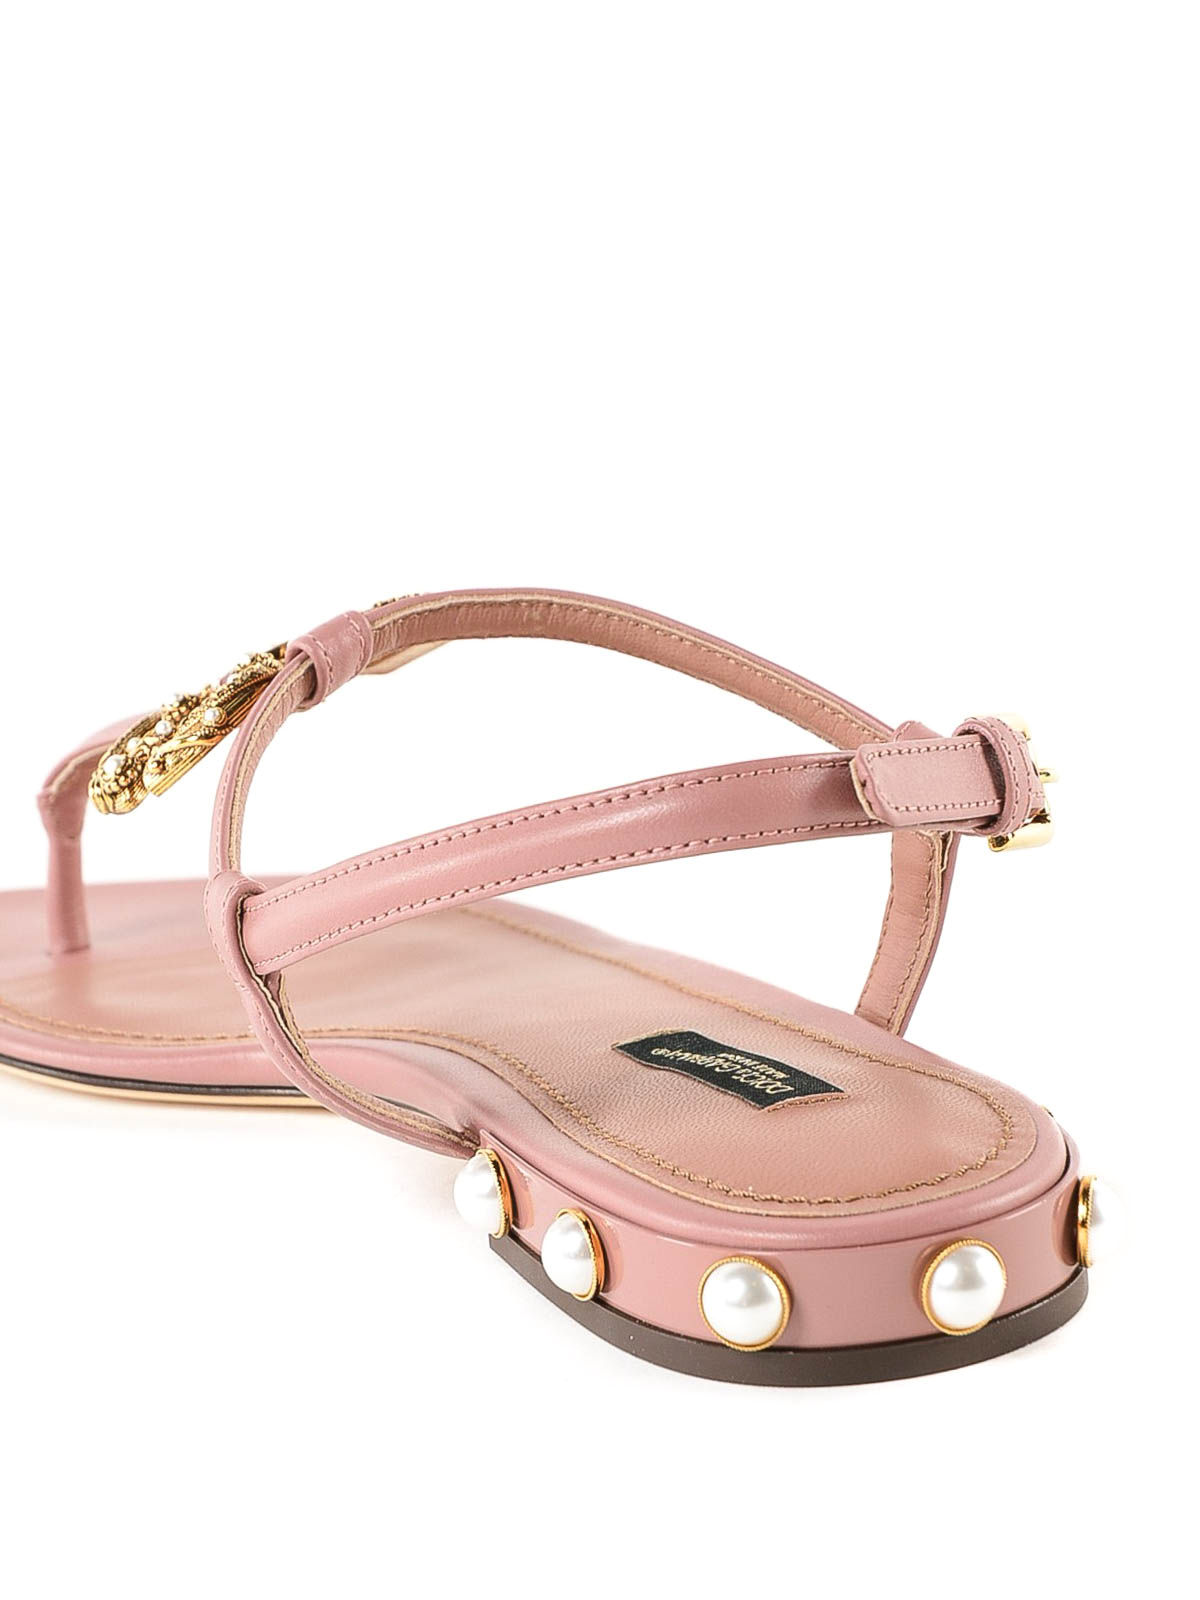 57c2a2092 metal-dg-pink-leather-thong-sandals -shop-online-dolce--gabbana-00000148576f00s004.jpg